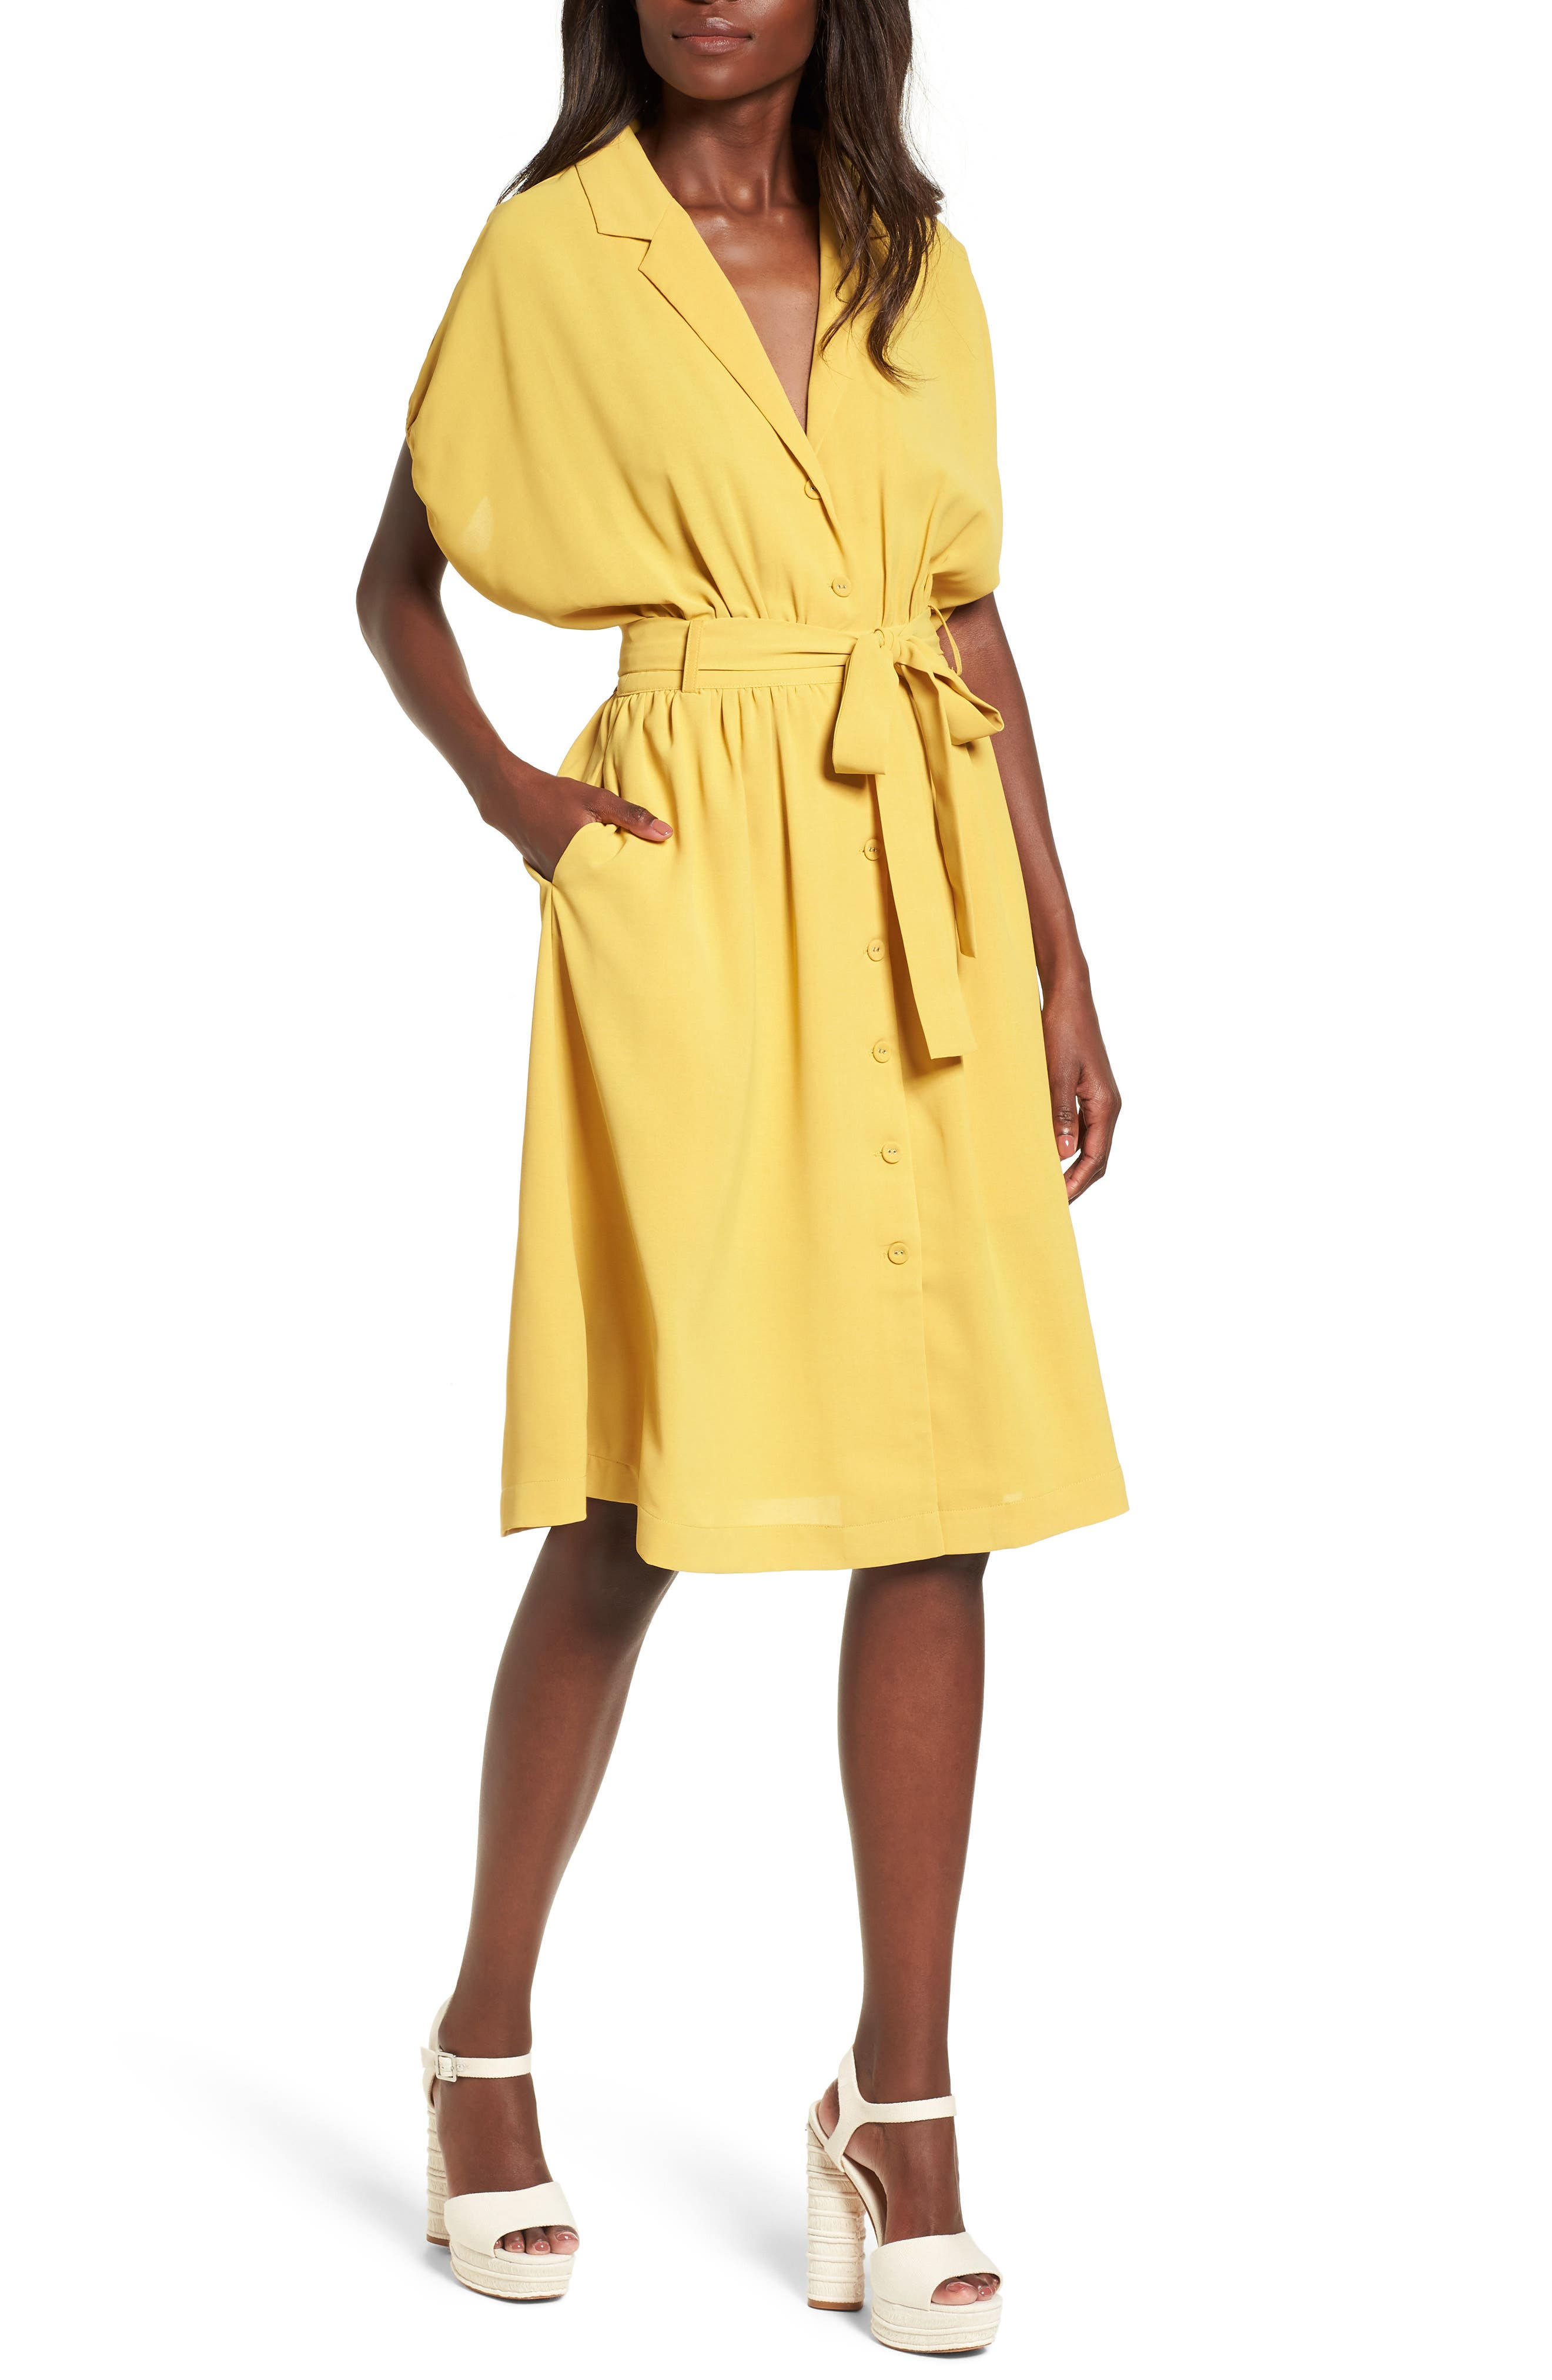 Chriselle x J.O.A. Cocoon Sleeve Dress,                             Alternate thumbnail 5, color,                             700